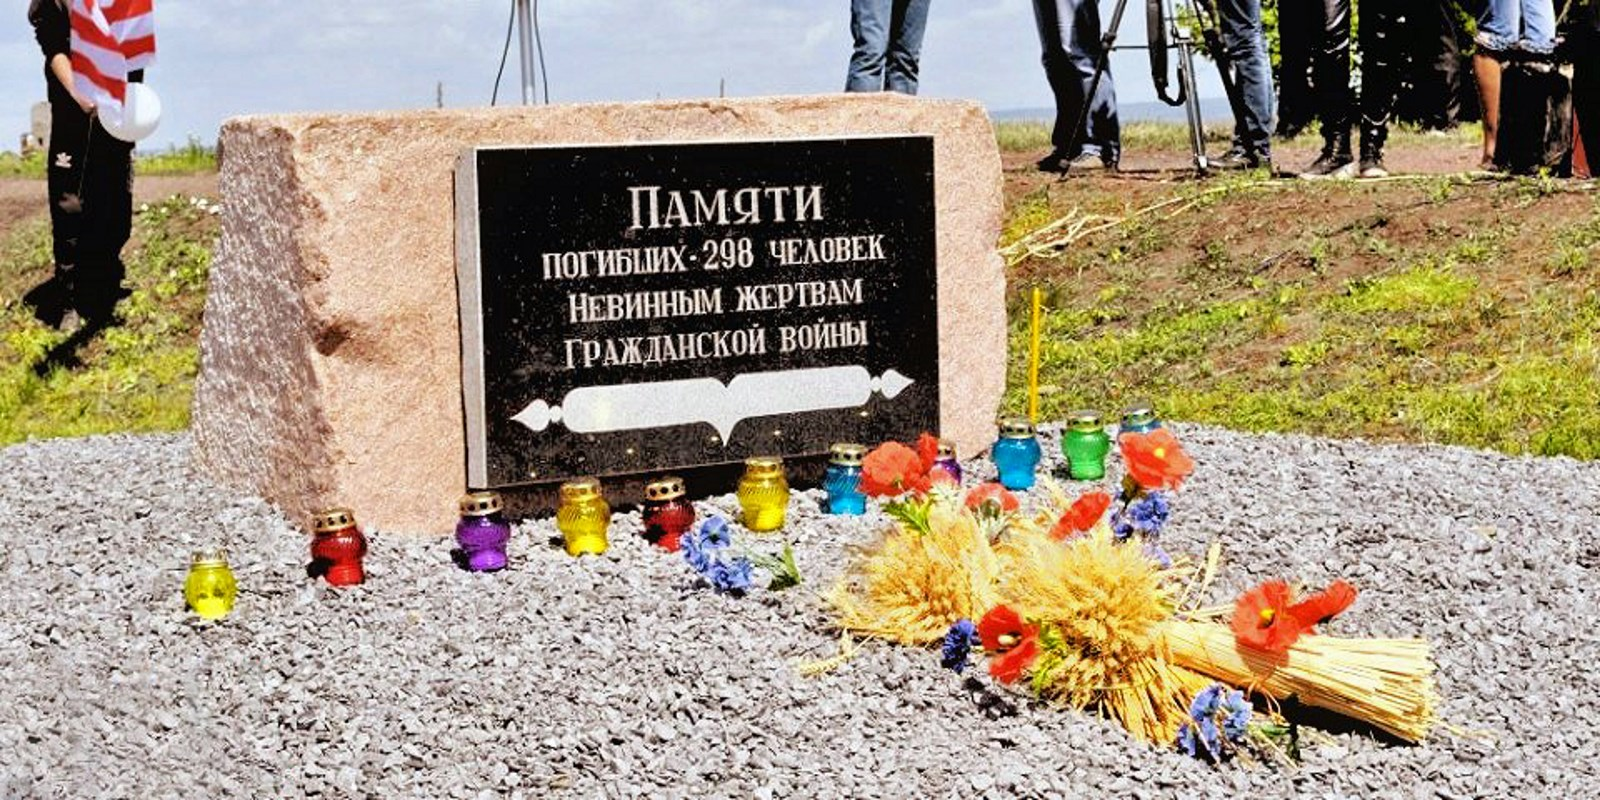 00 dnr memorial to MH17 victims in grabovo 160915